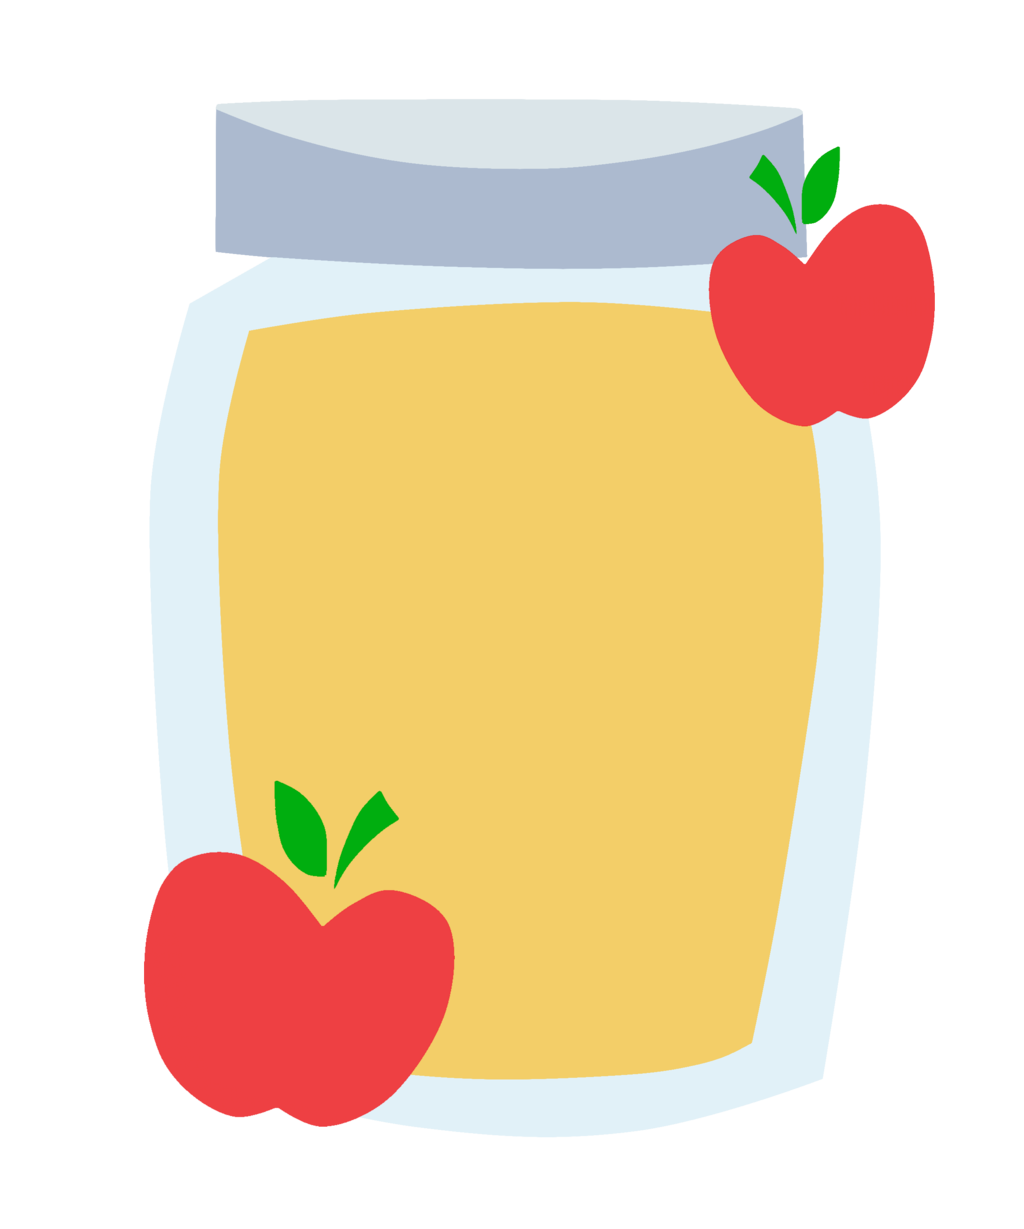 vector library stock Apple s cutie mark. Apples and honey clipart.